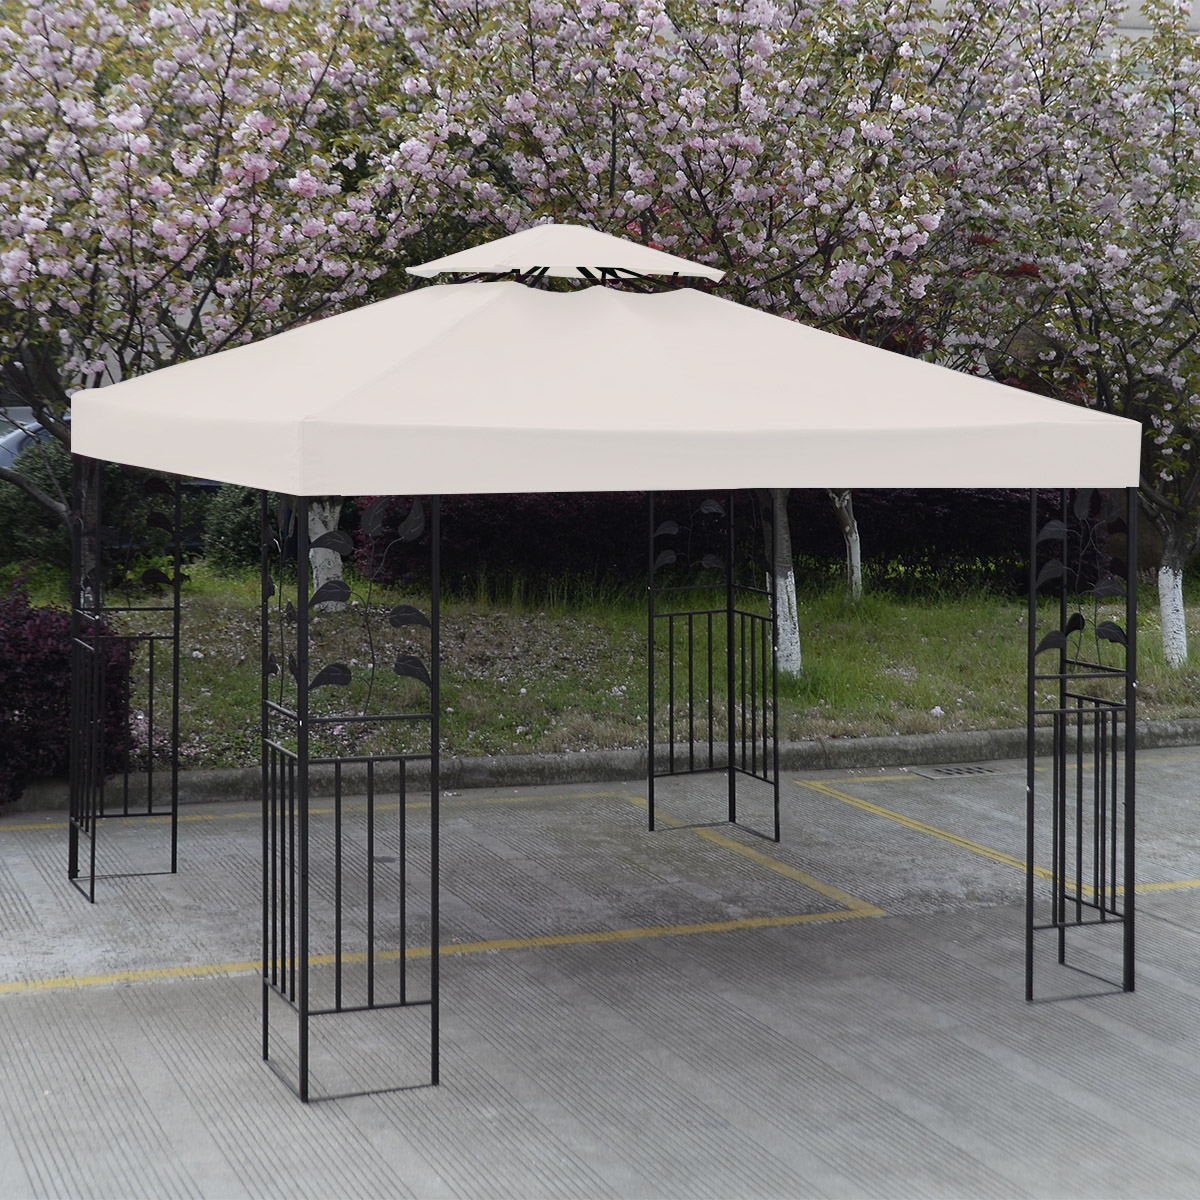 3Mx3M Gazebo Roof Top Cover Patio Canopy Replacement Cream 2 Tier